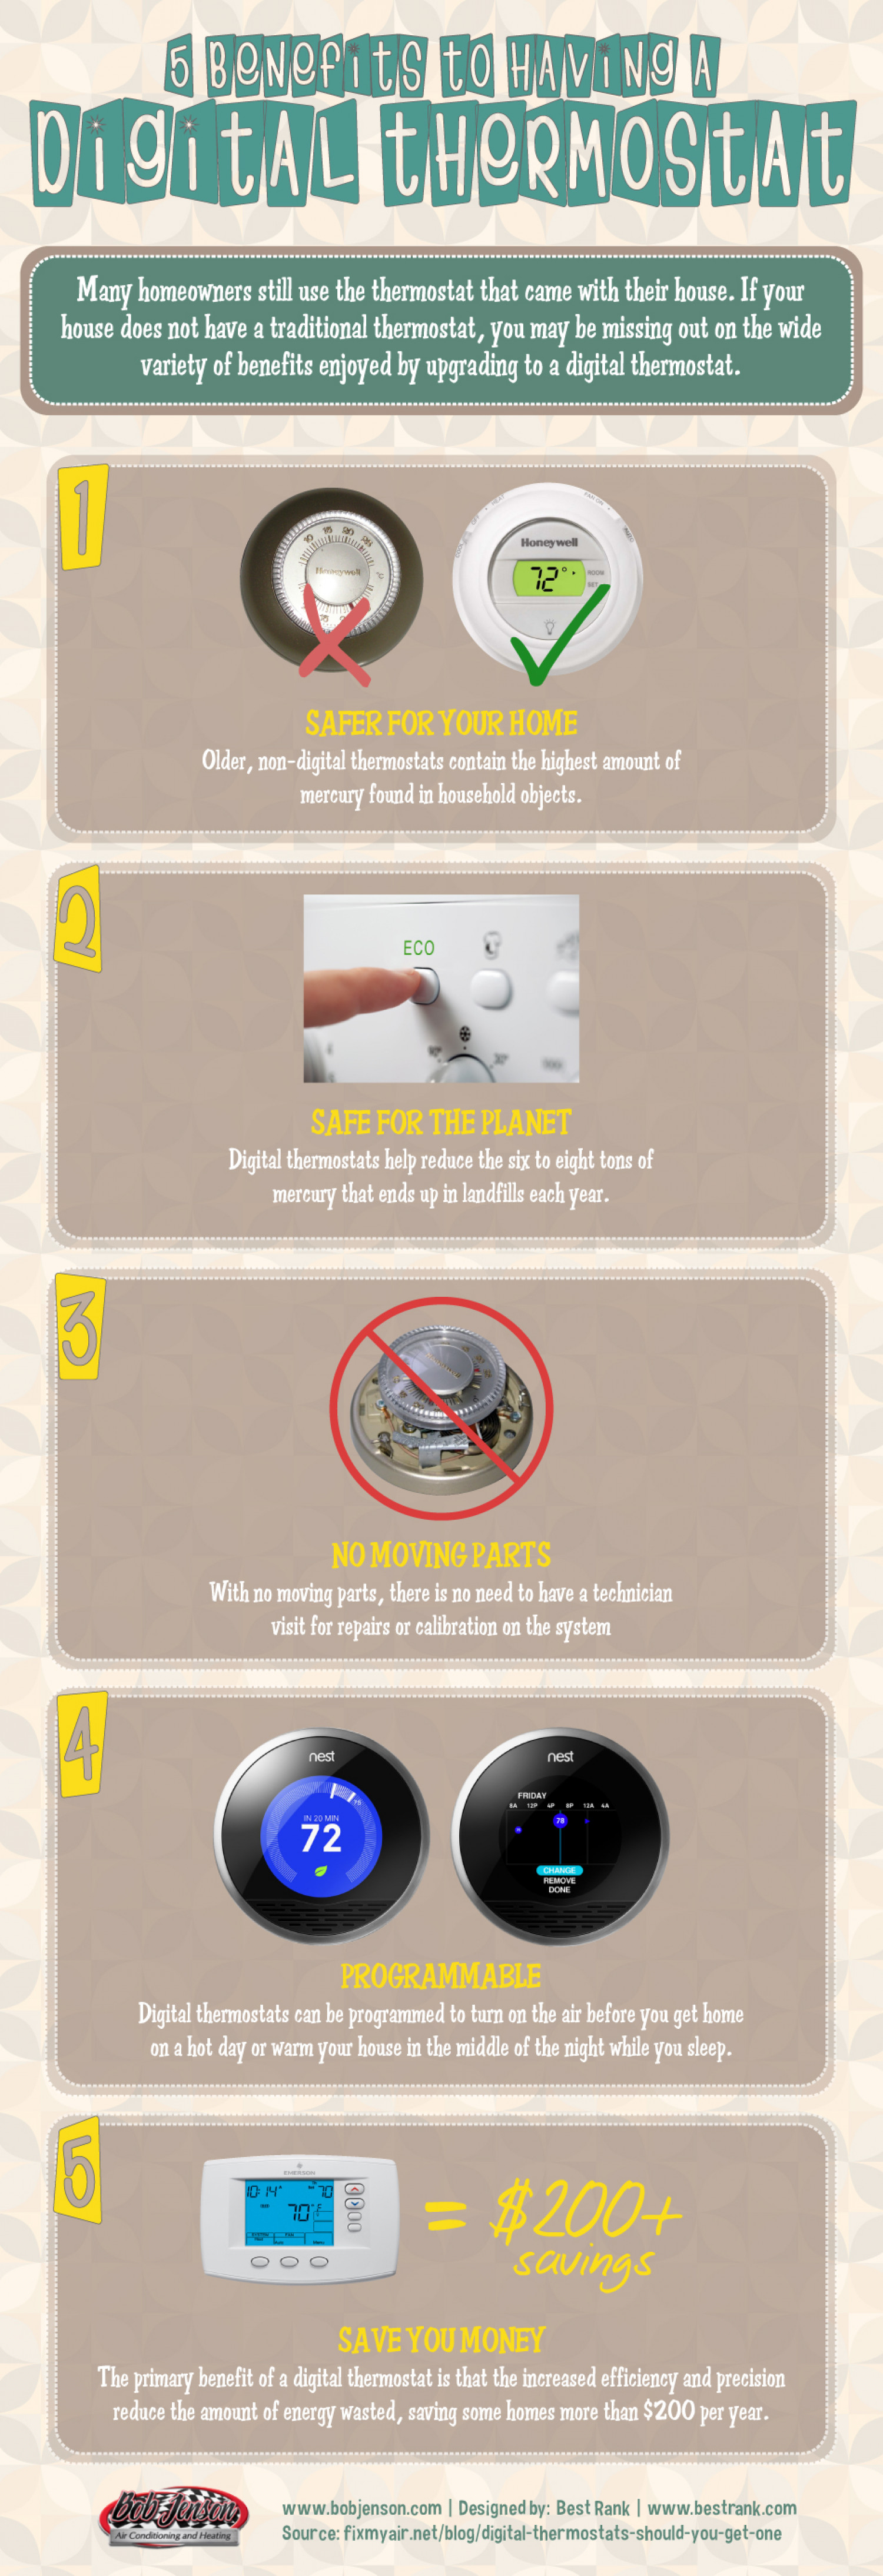 5 Benefits To Having A Digital Thermostat in Your Home Infographic